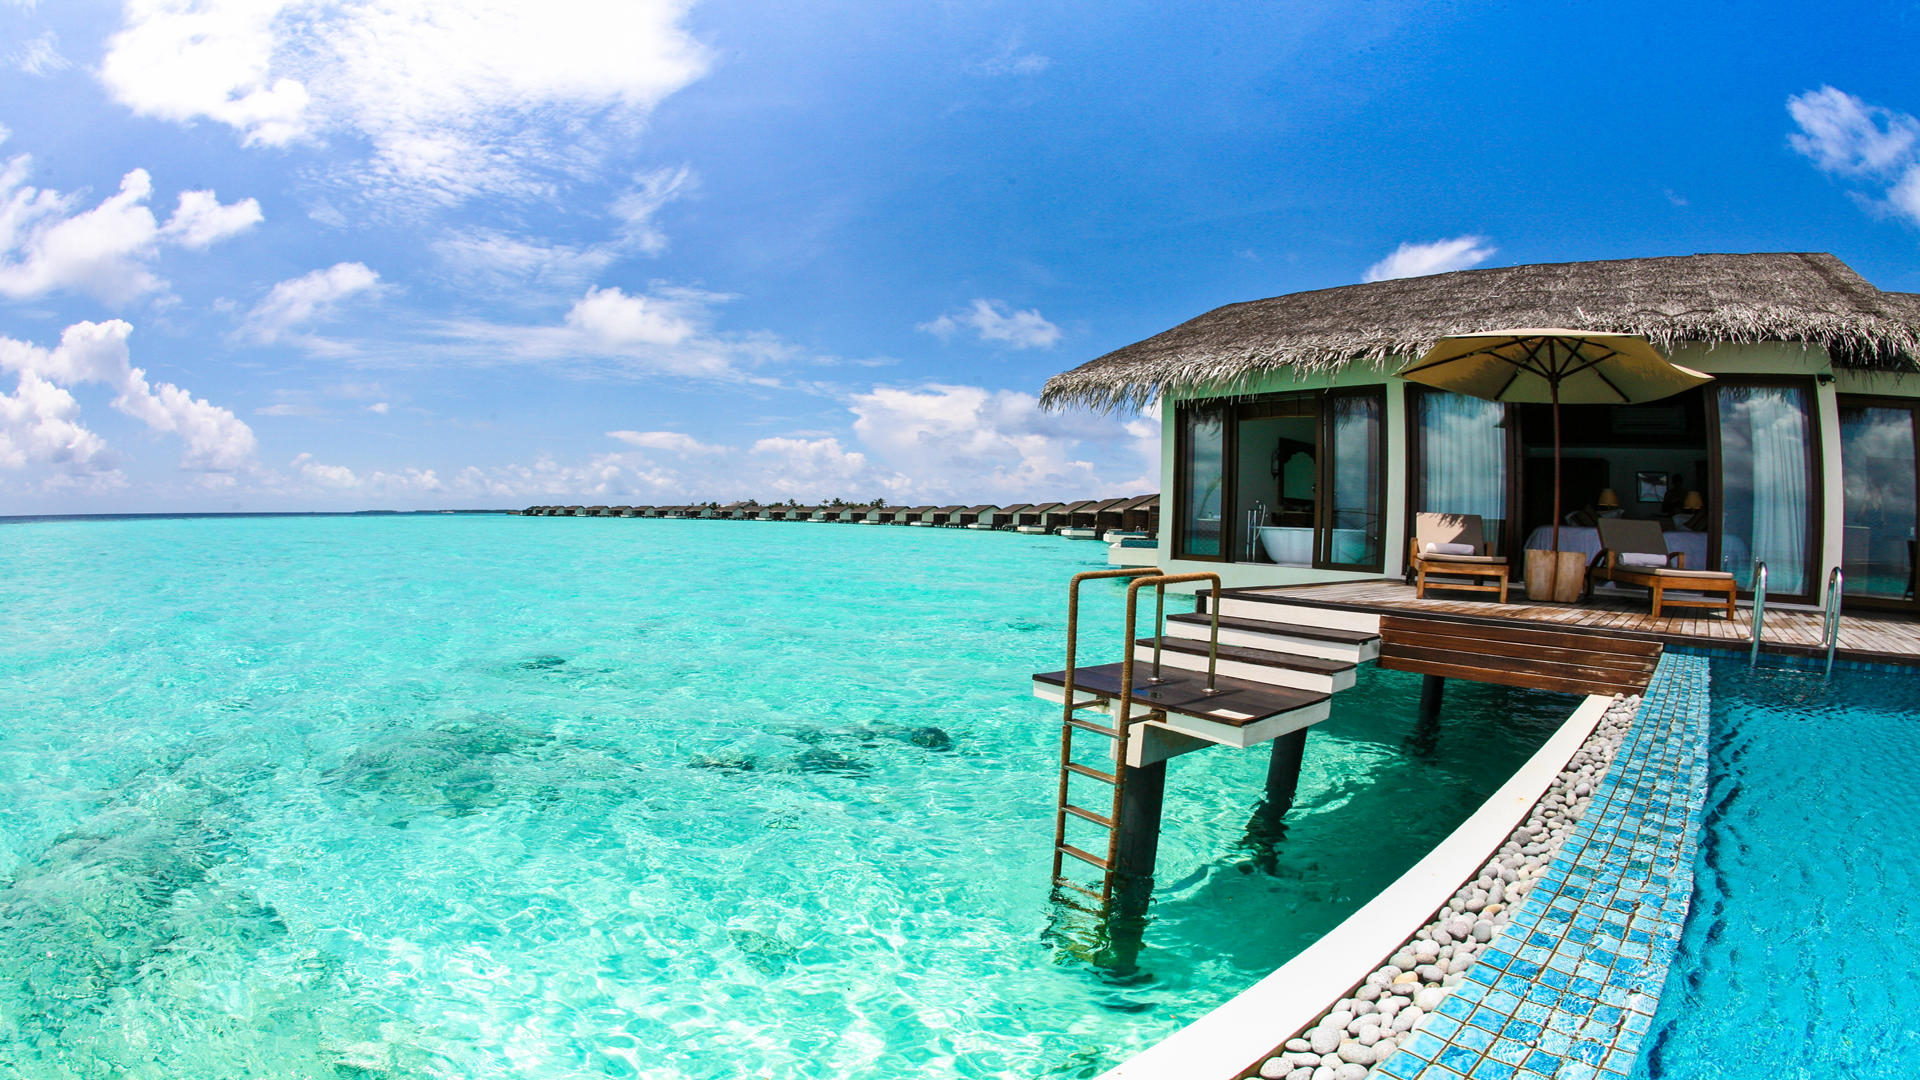 Cenizaro_ResidencesMaldives_Water — — 游泳池 — — 别墅 — — 可俯瞰